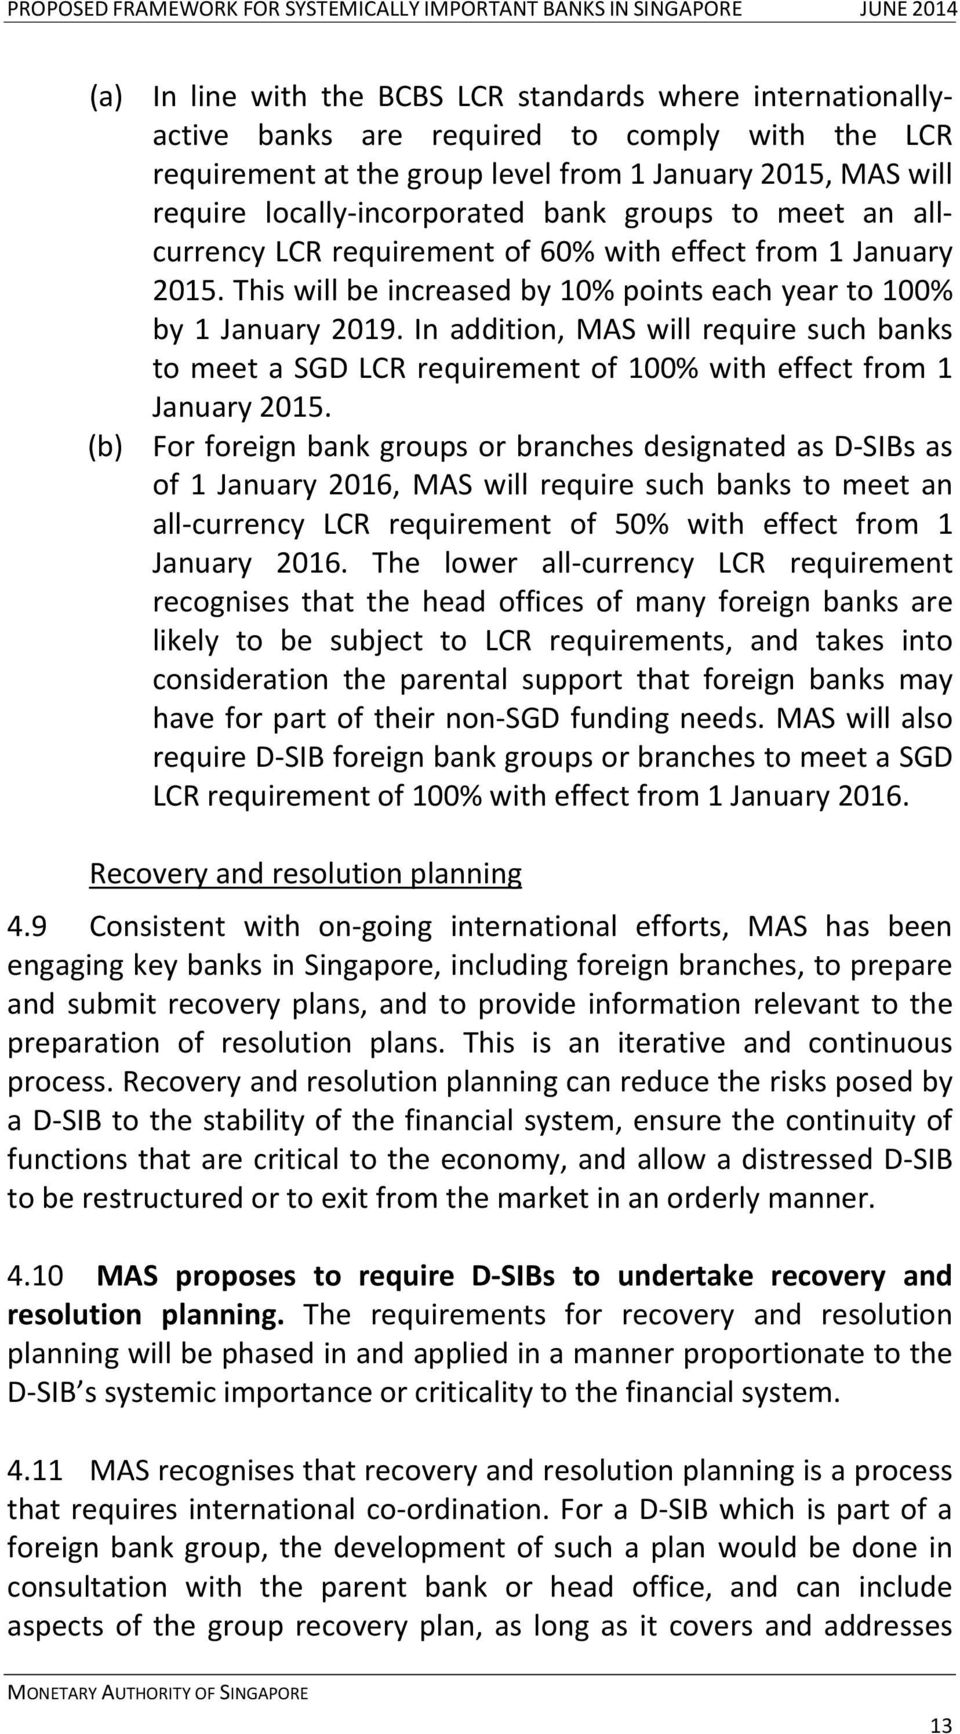 In addition, MAS will require such banks to meet a SGD LCR requirement of 100% with effect from 1 January 2015.